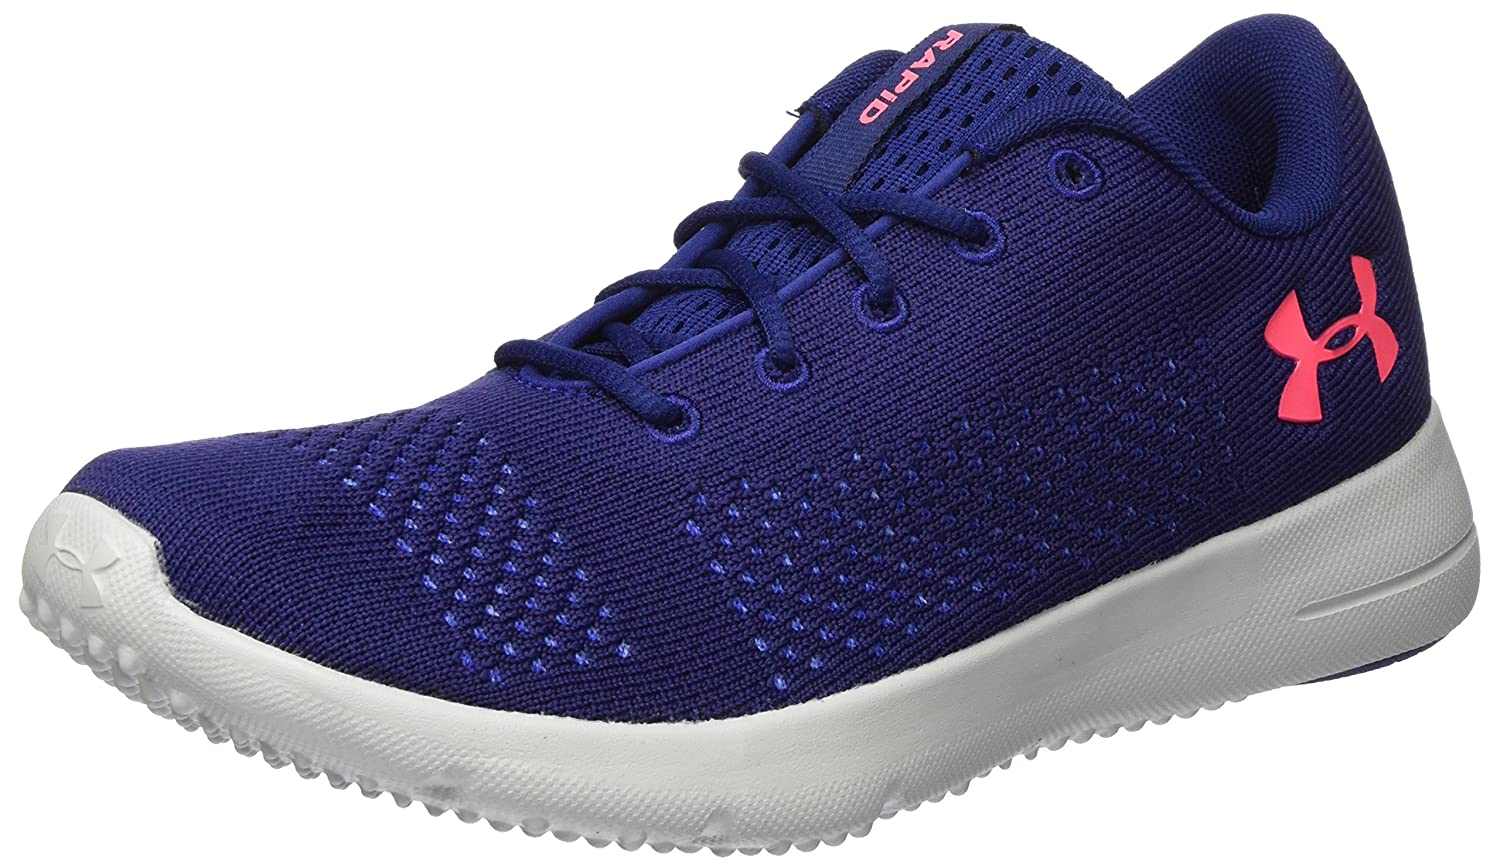 TALLA 36 EU. Under Armour UA W Rapid, Zapatillas de Running para Mujer